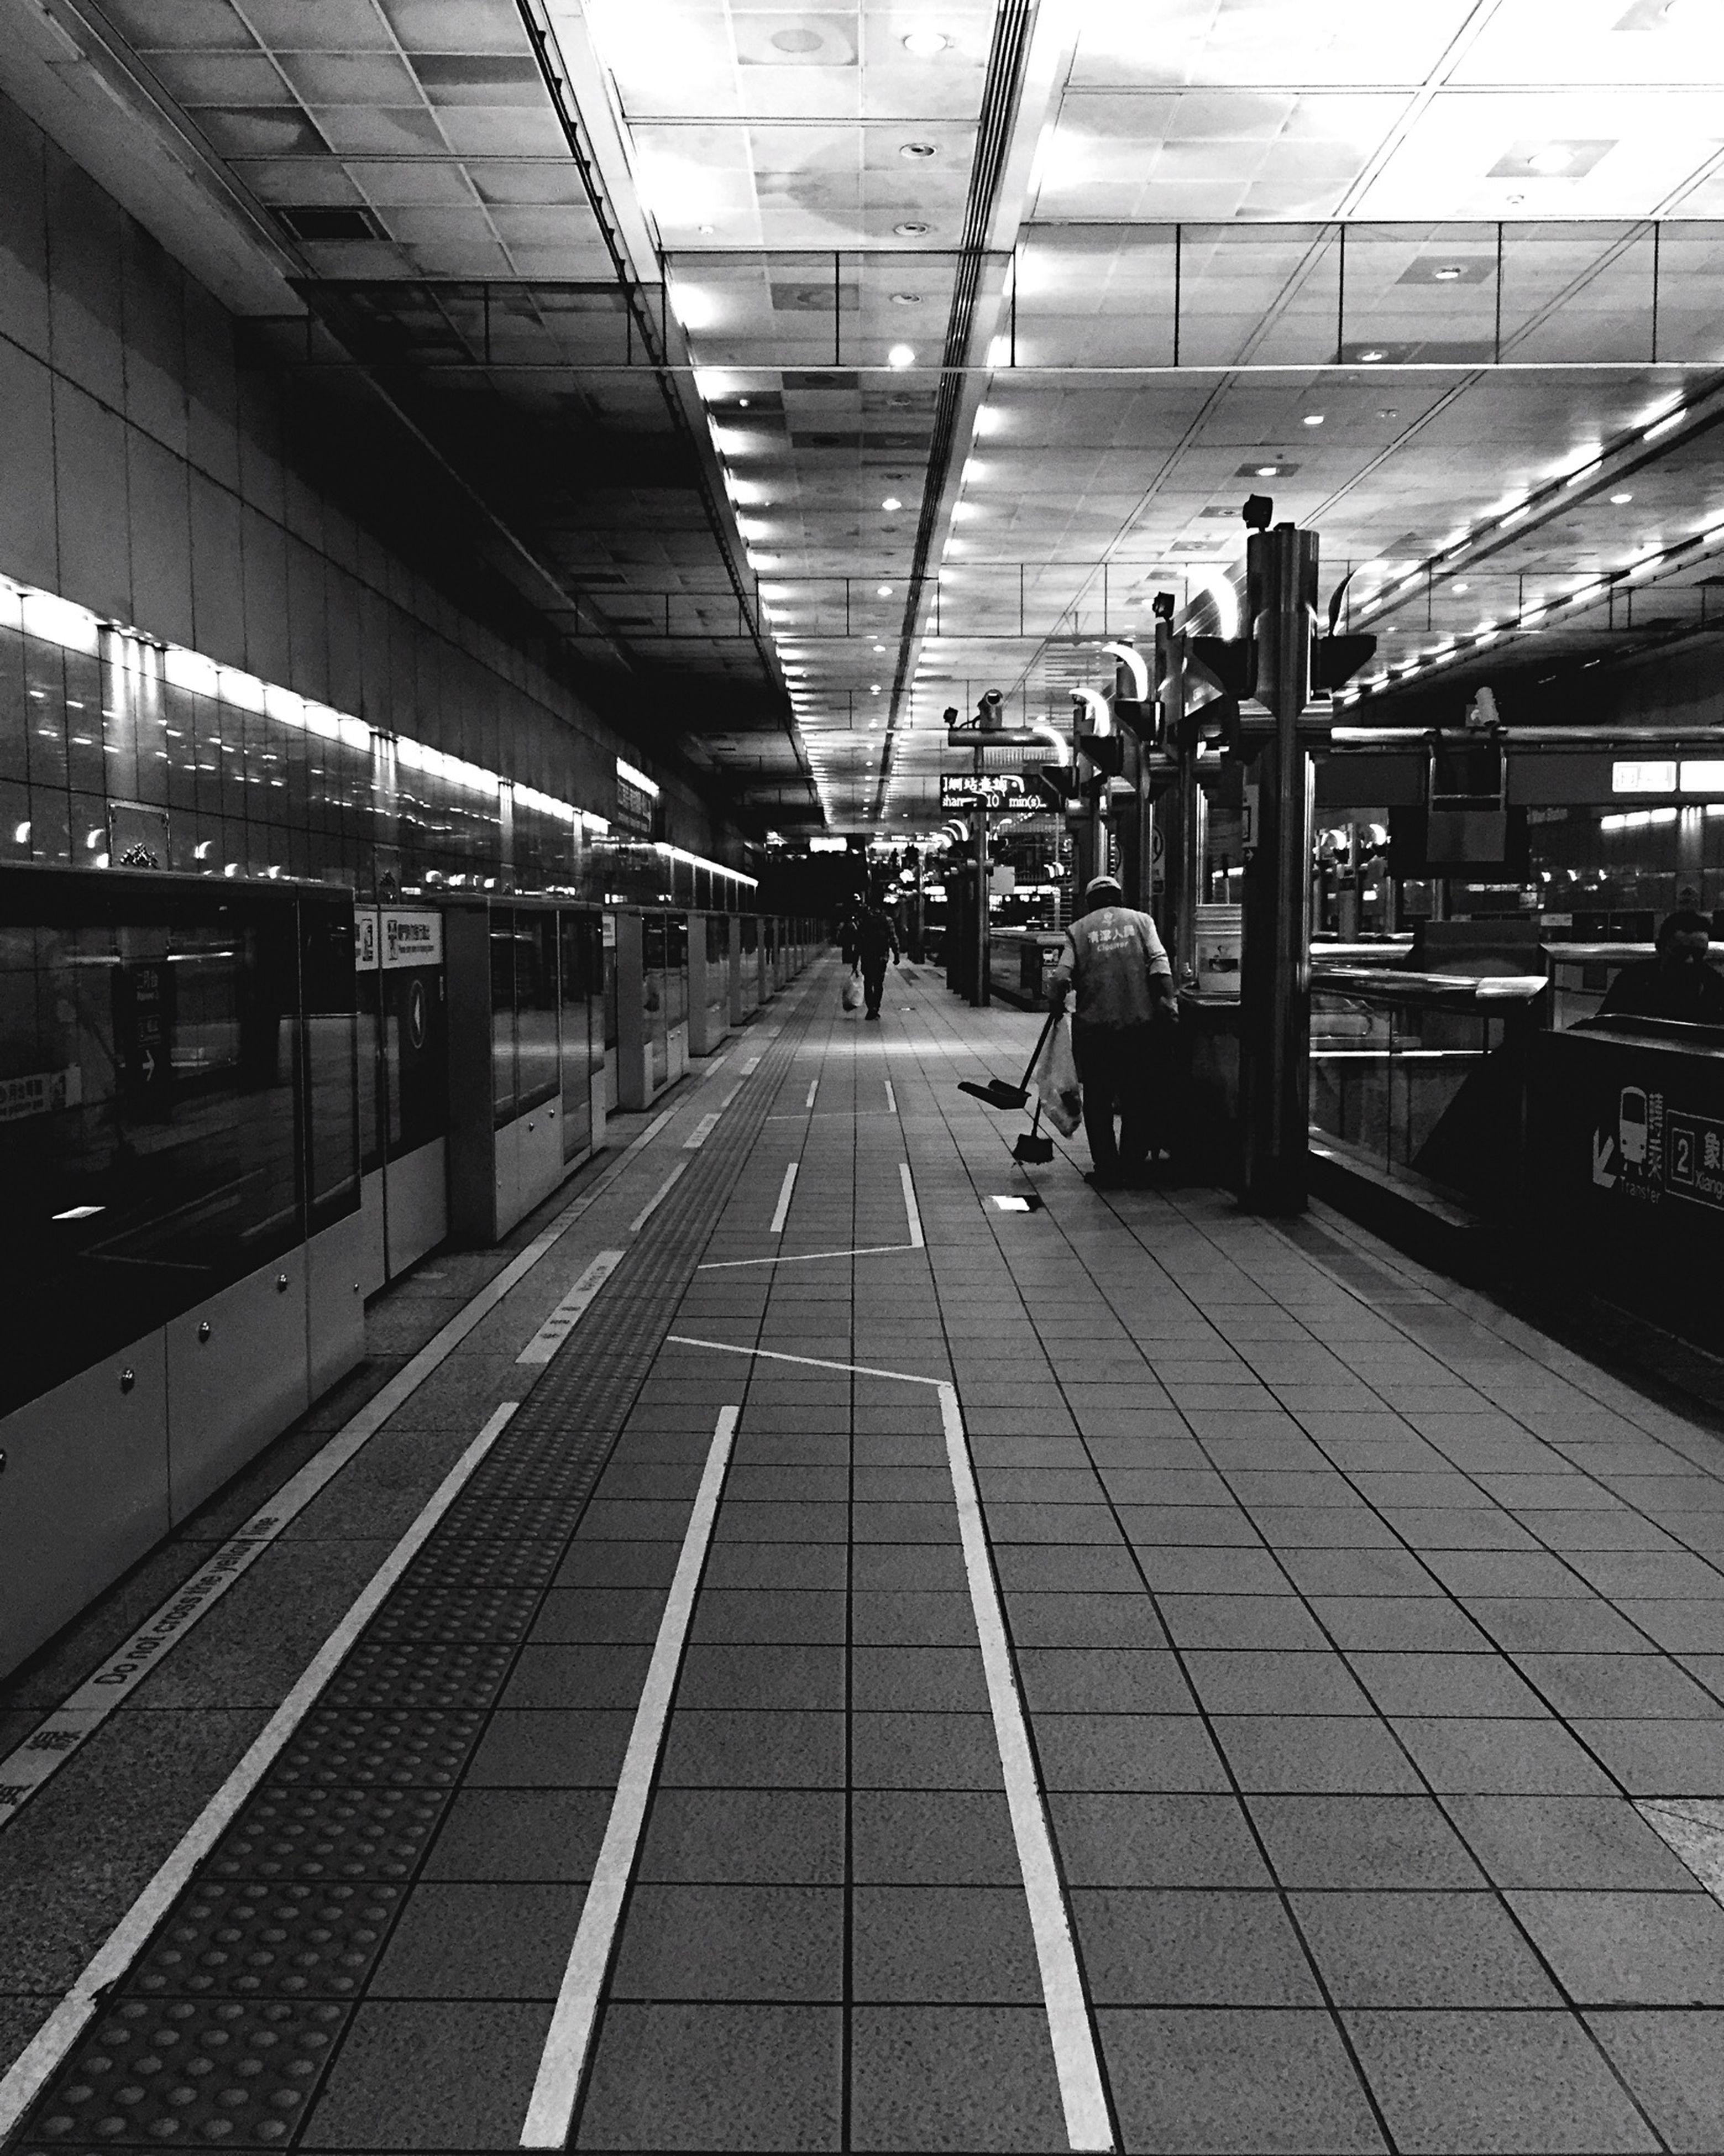 indoors, ceiling, transportation, men, railroad station platform, the way forward, railroad station, lifestyles, incidental people, travel, person, walking, airport, public transportation, rail transportation, railroad track, diminishing perspective, built structure, tiled floor